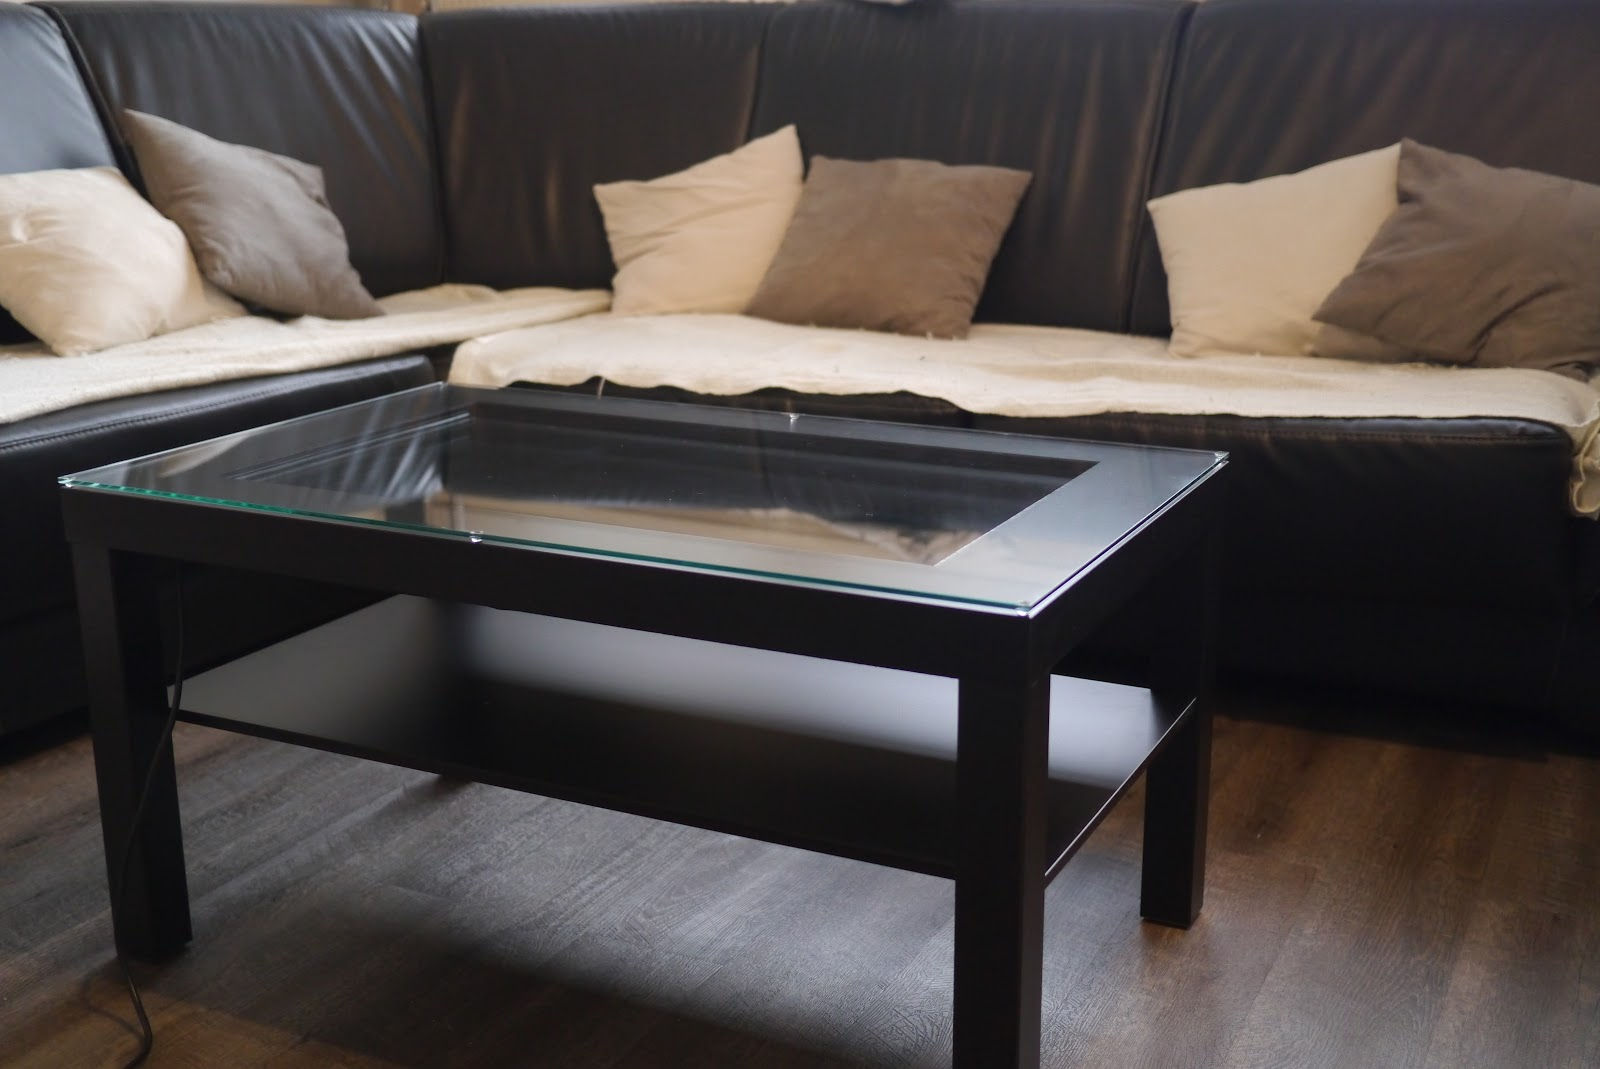 Le diy de droofy table basse tactile v2 pqlab for Table basse tout en verre